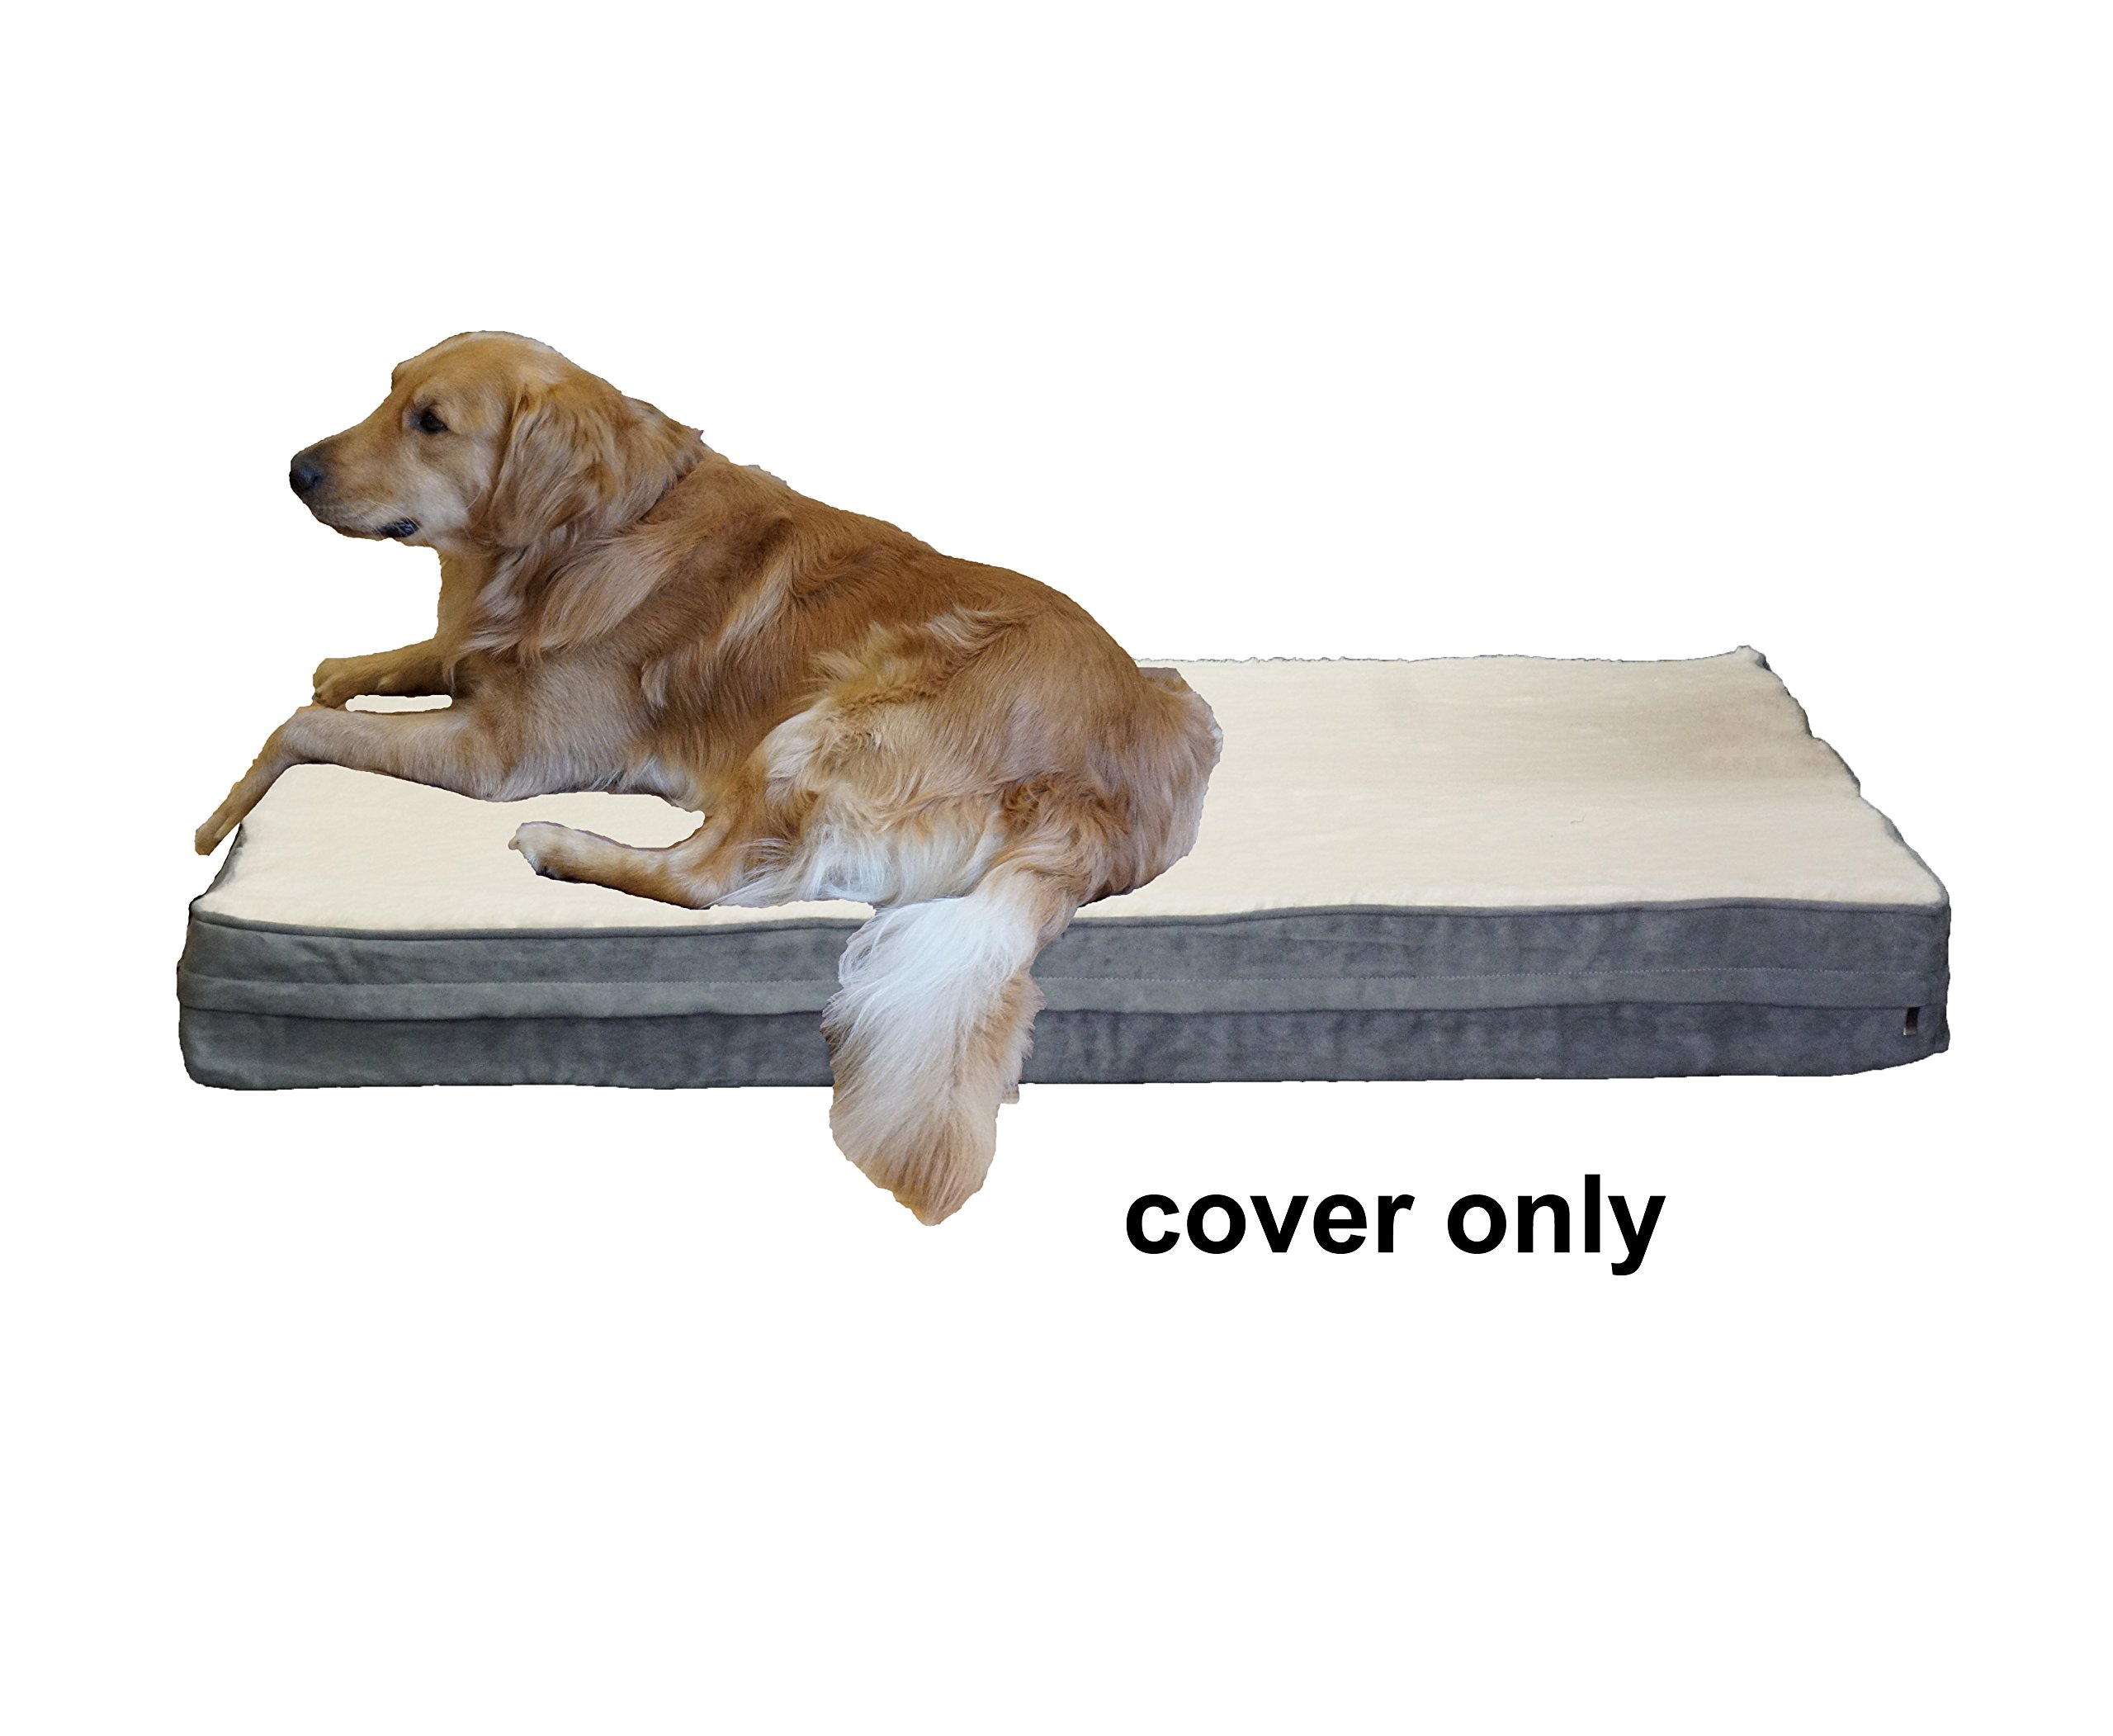 PetBed4Less Cream Color Super Soft Fleece Plush Top Pet Bed Dog Bed Zipper Cover Small, Medium to Super Large - 8 sizes - Replacement Zipper Cover only (37''x27''x4'', Gray)